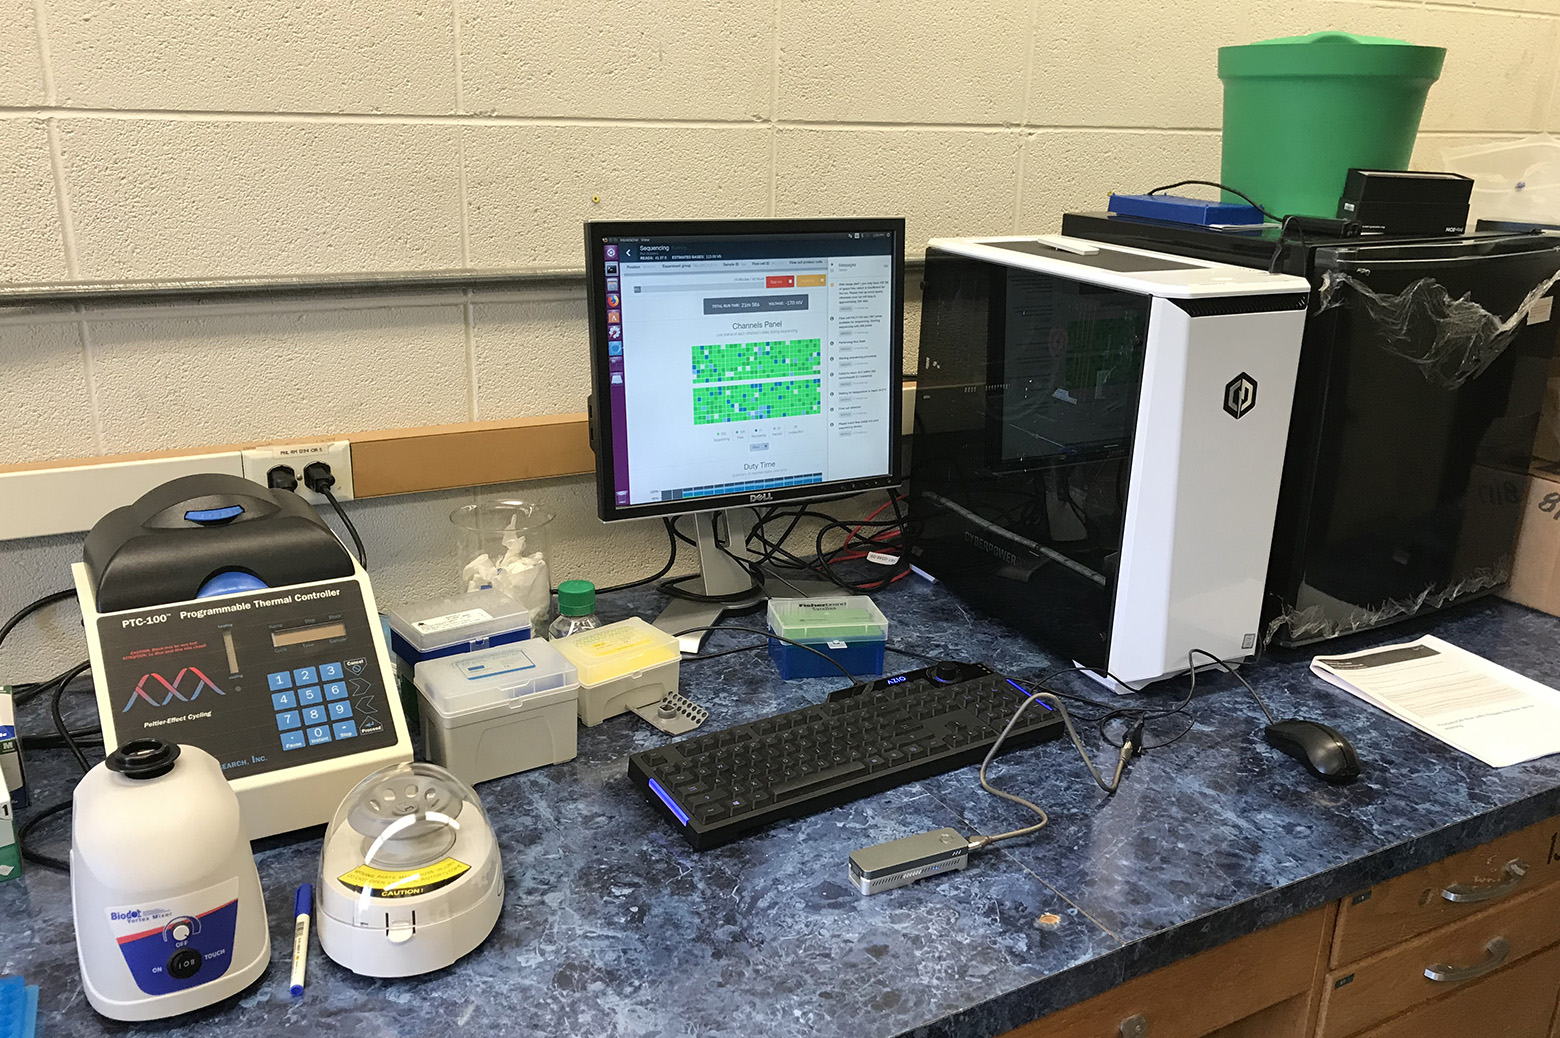 Gene sequencing device at workstation